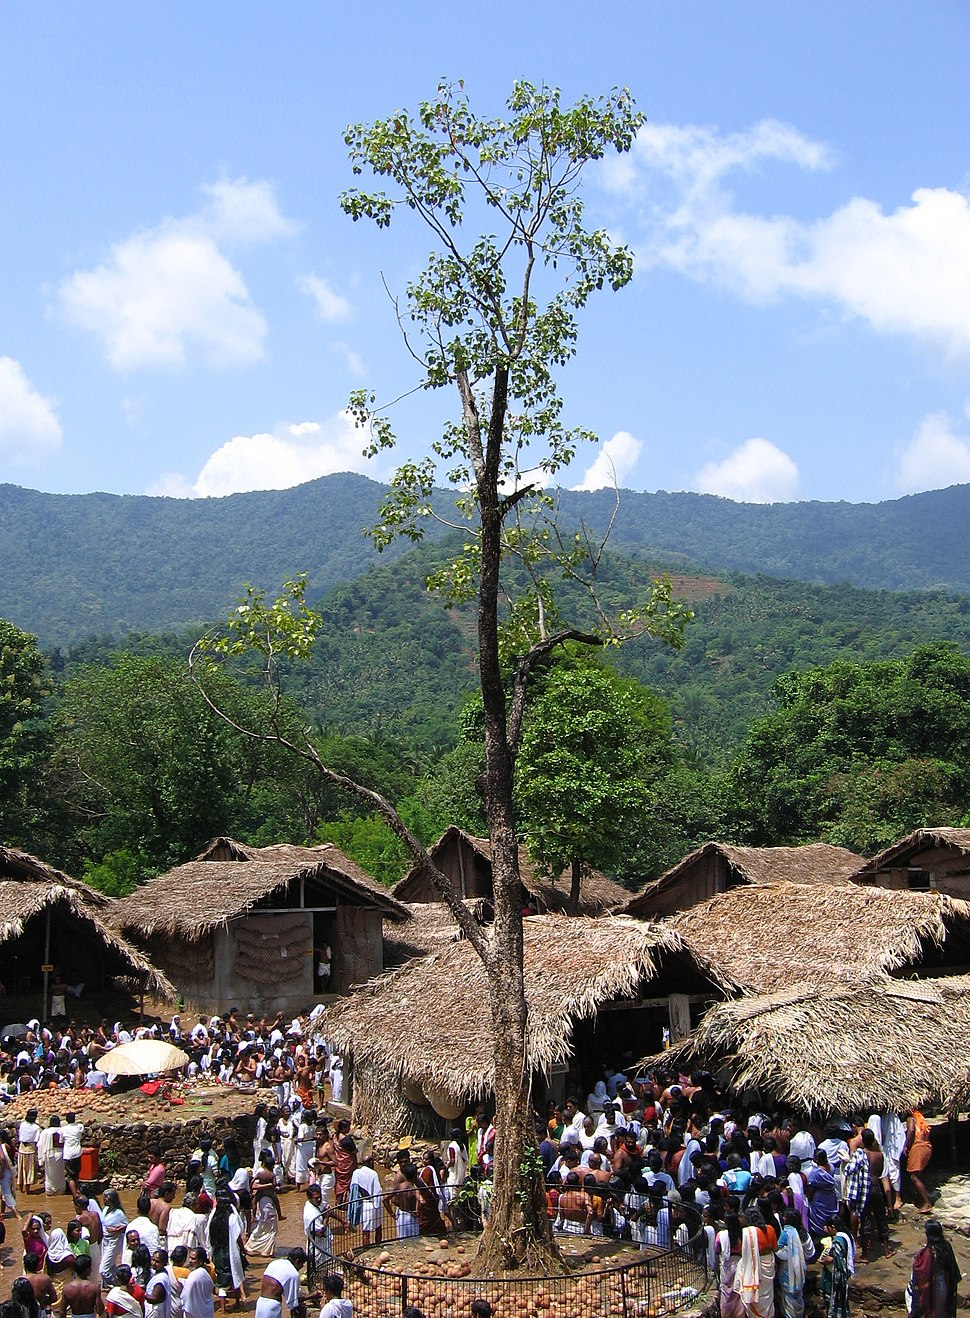 The Banyan tree at Akkare Kottiyoor